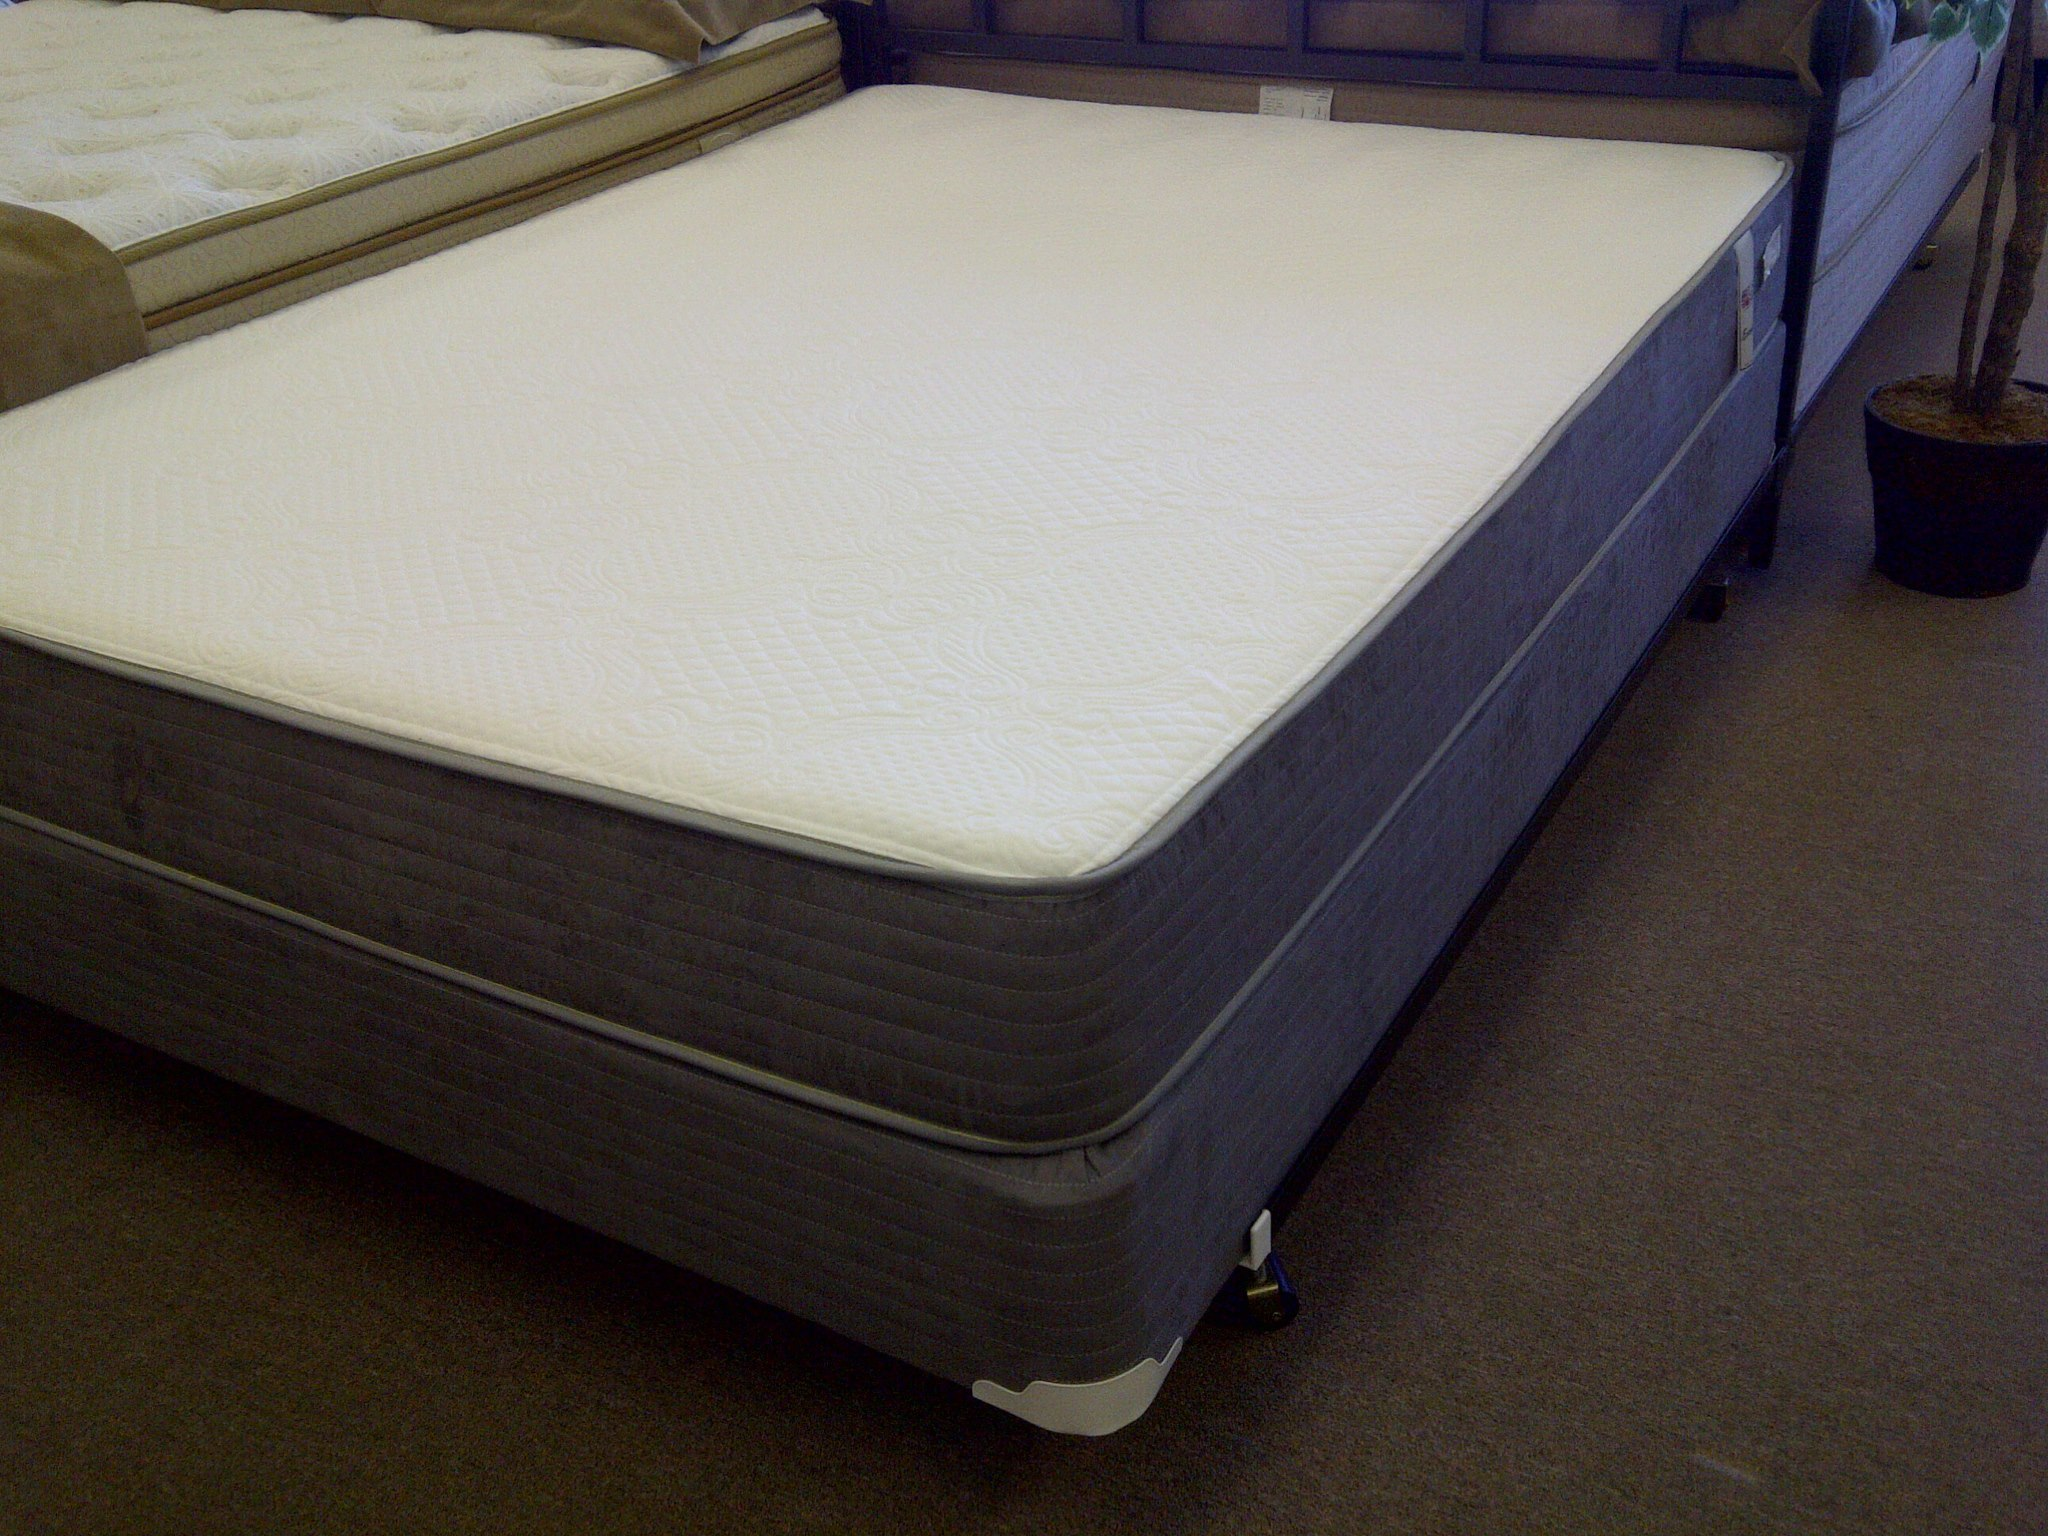 Mattress To Go – Natural Talalay Latex Mattress And Latex Mattress Topper Store In Shelby Township Mi